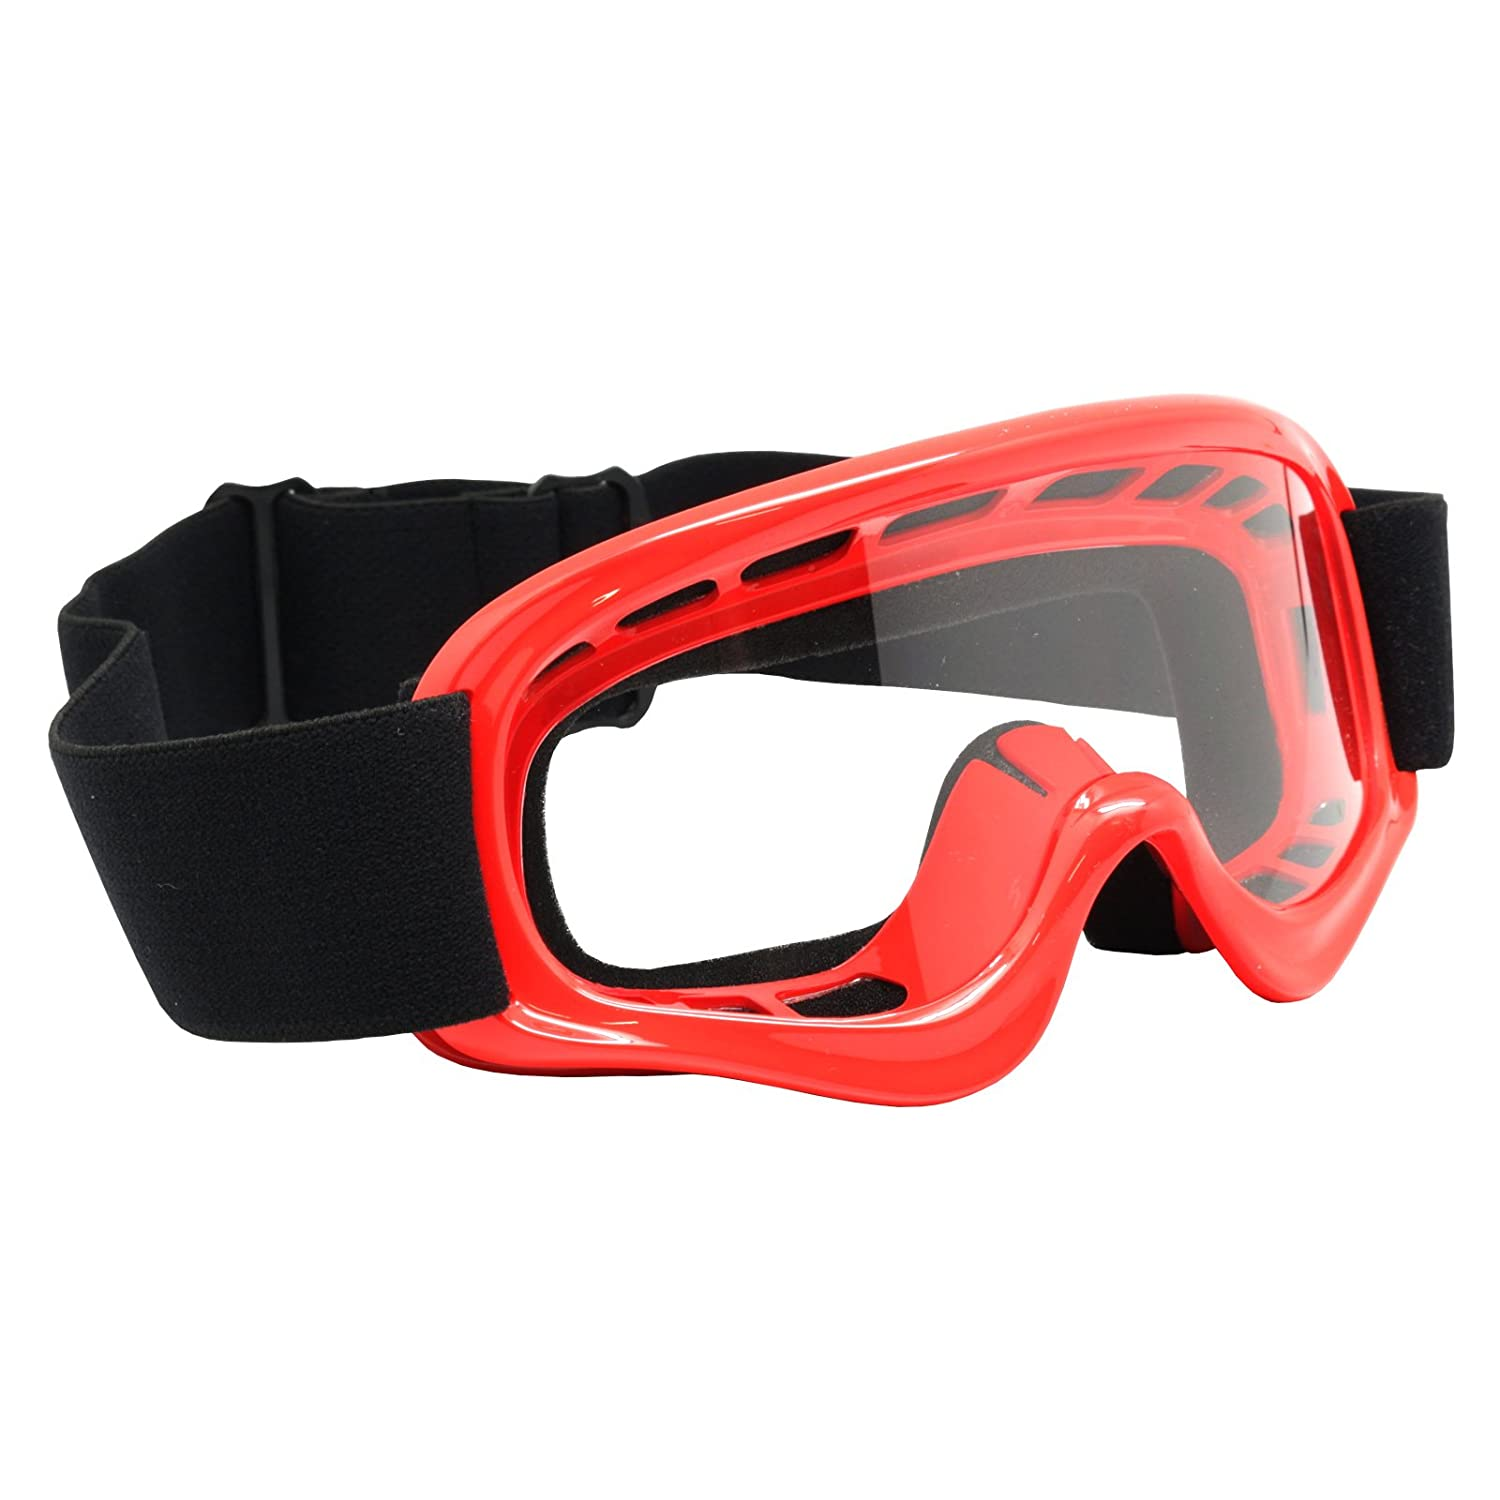 TMS YOUTH RED OFF-ROAD GOGGLES MOTOCROSS DIRT BIKE ATV MX AS10-R